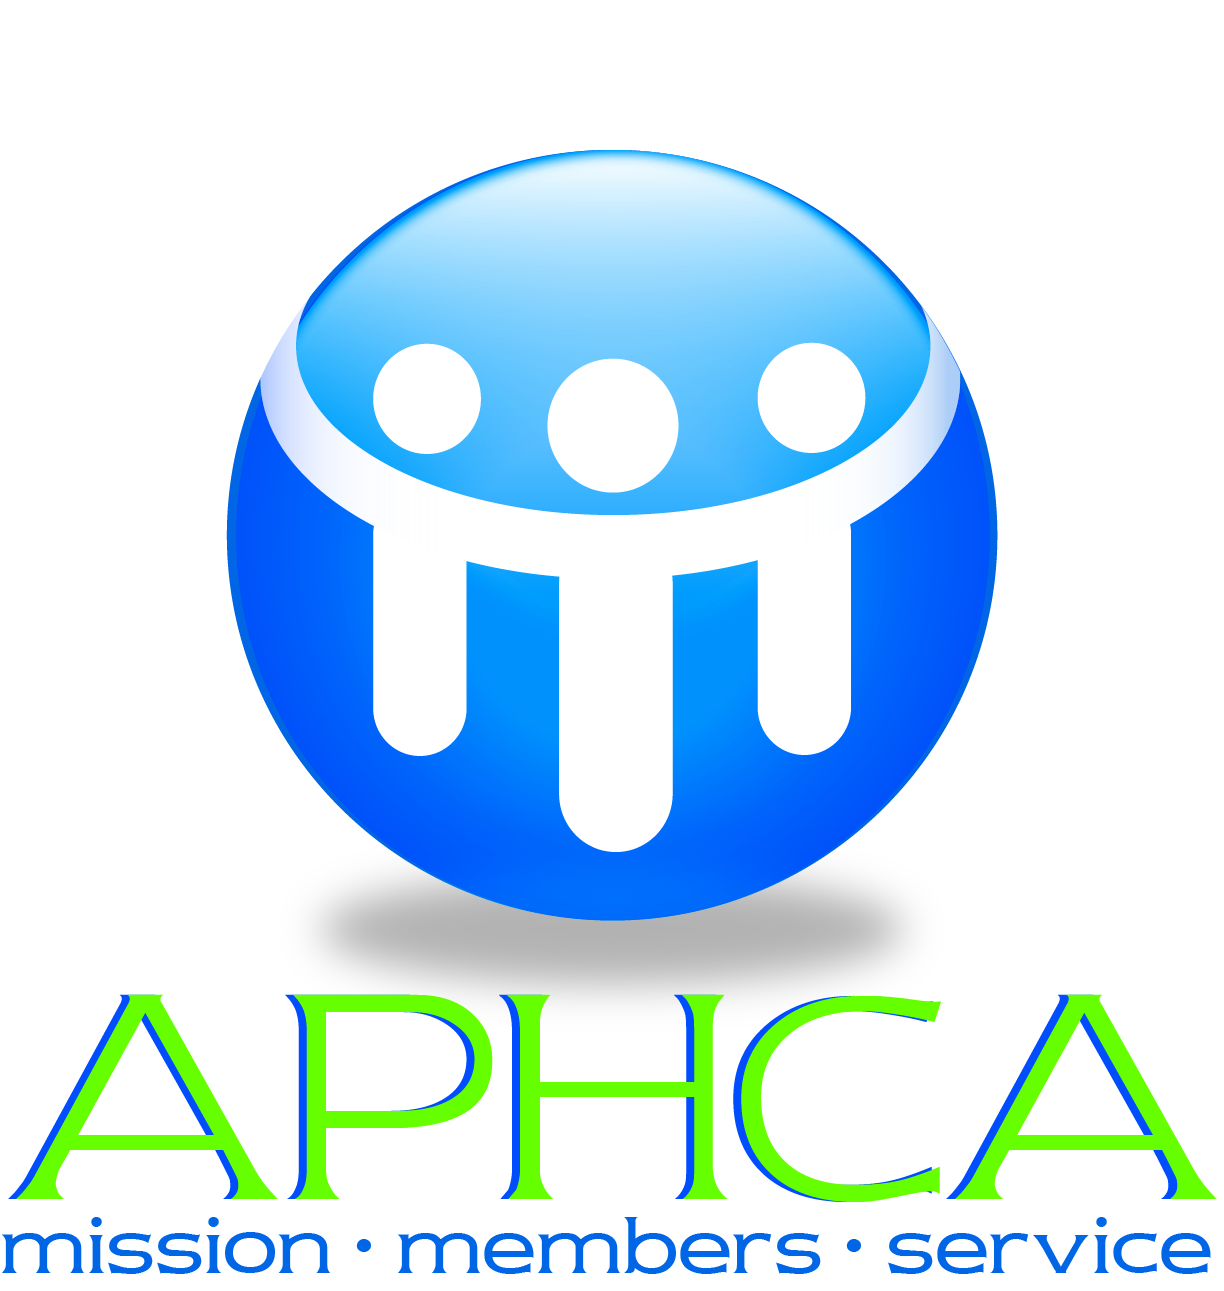 APHCA Final Logo with text